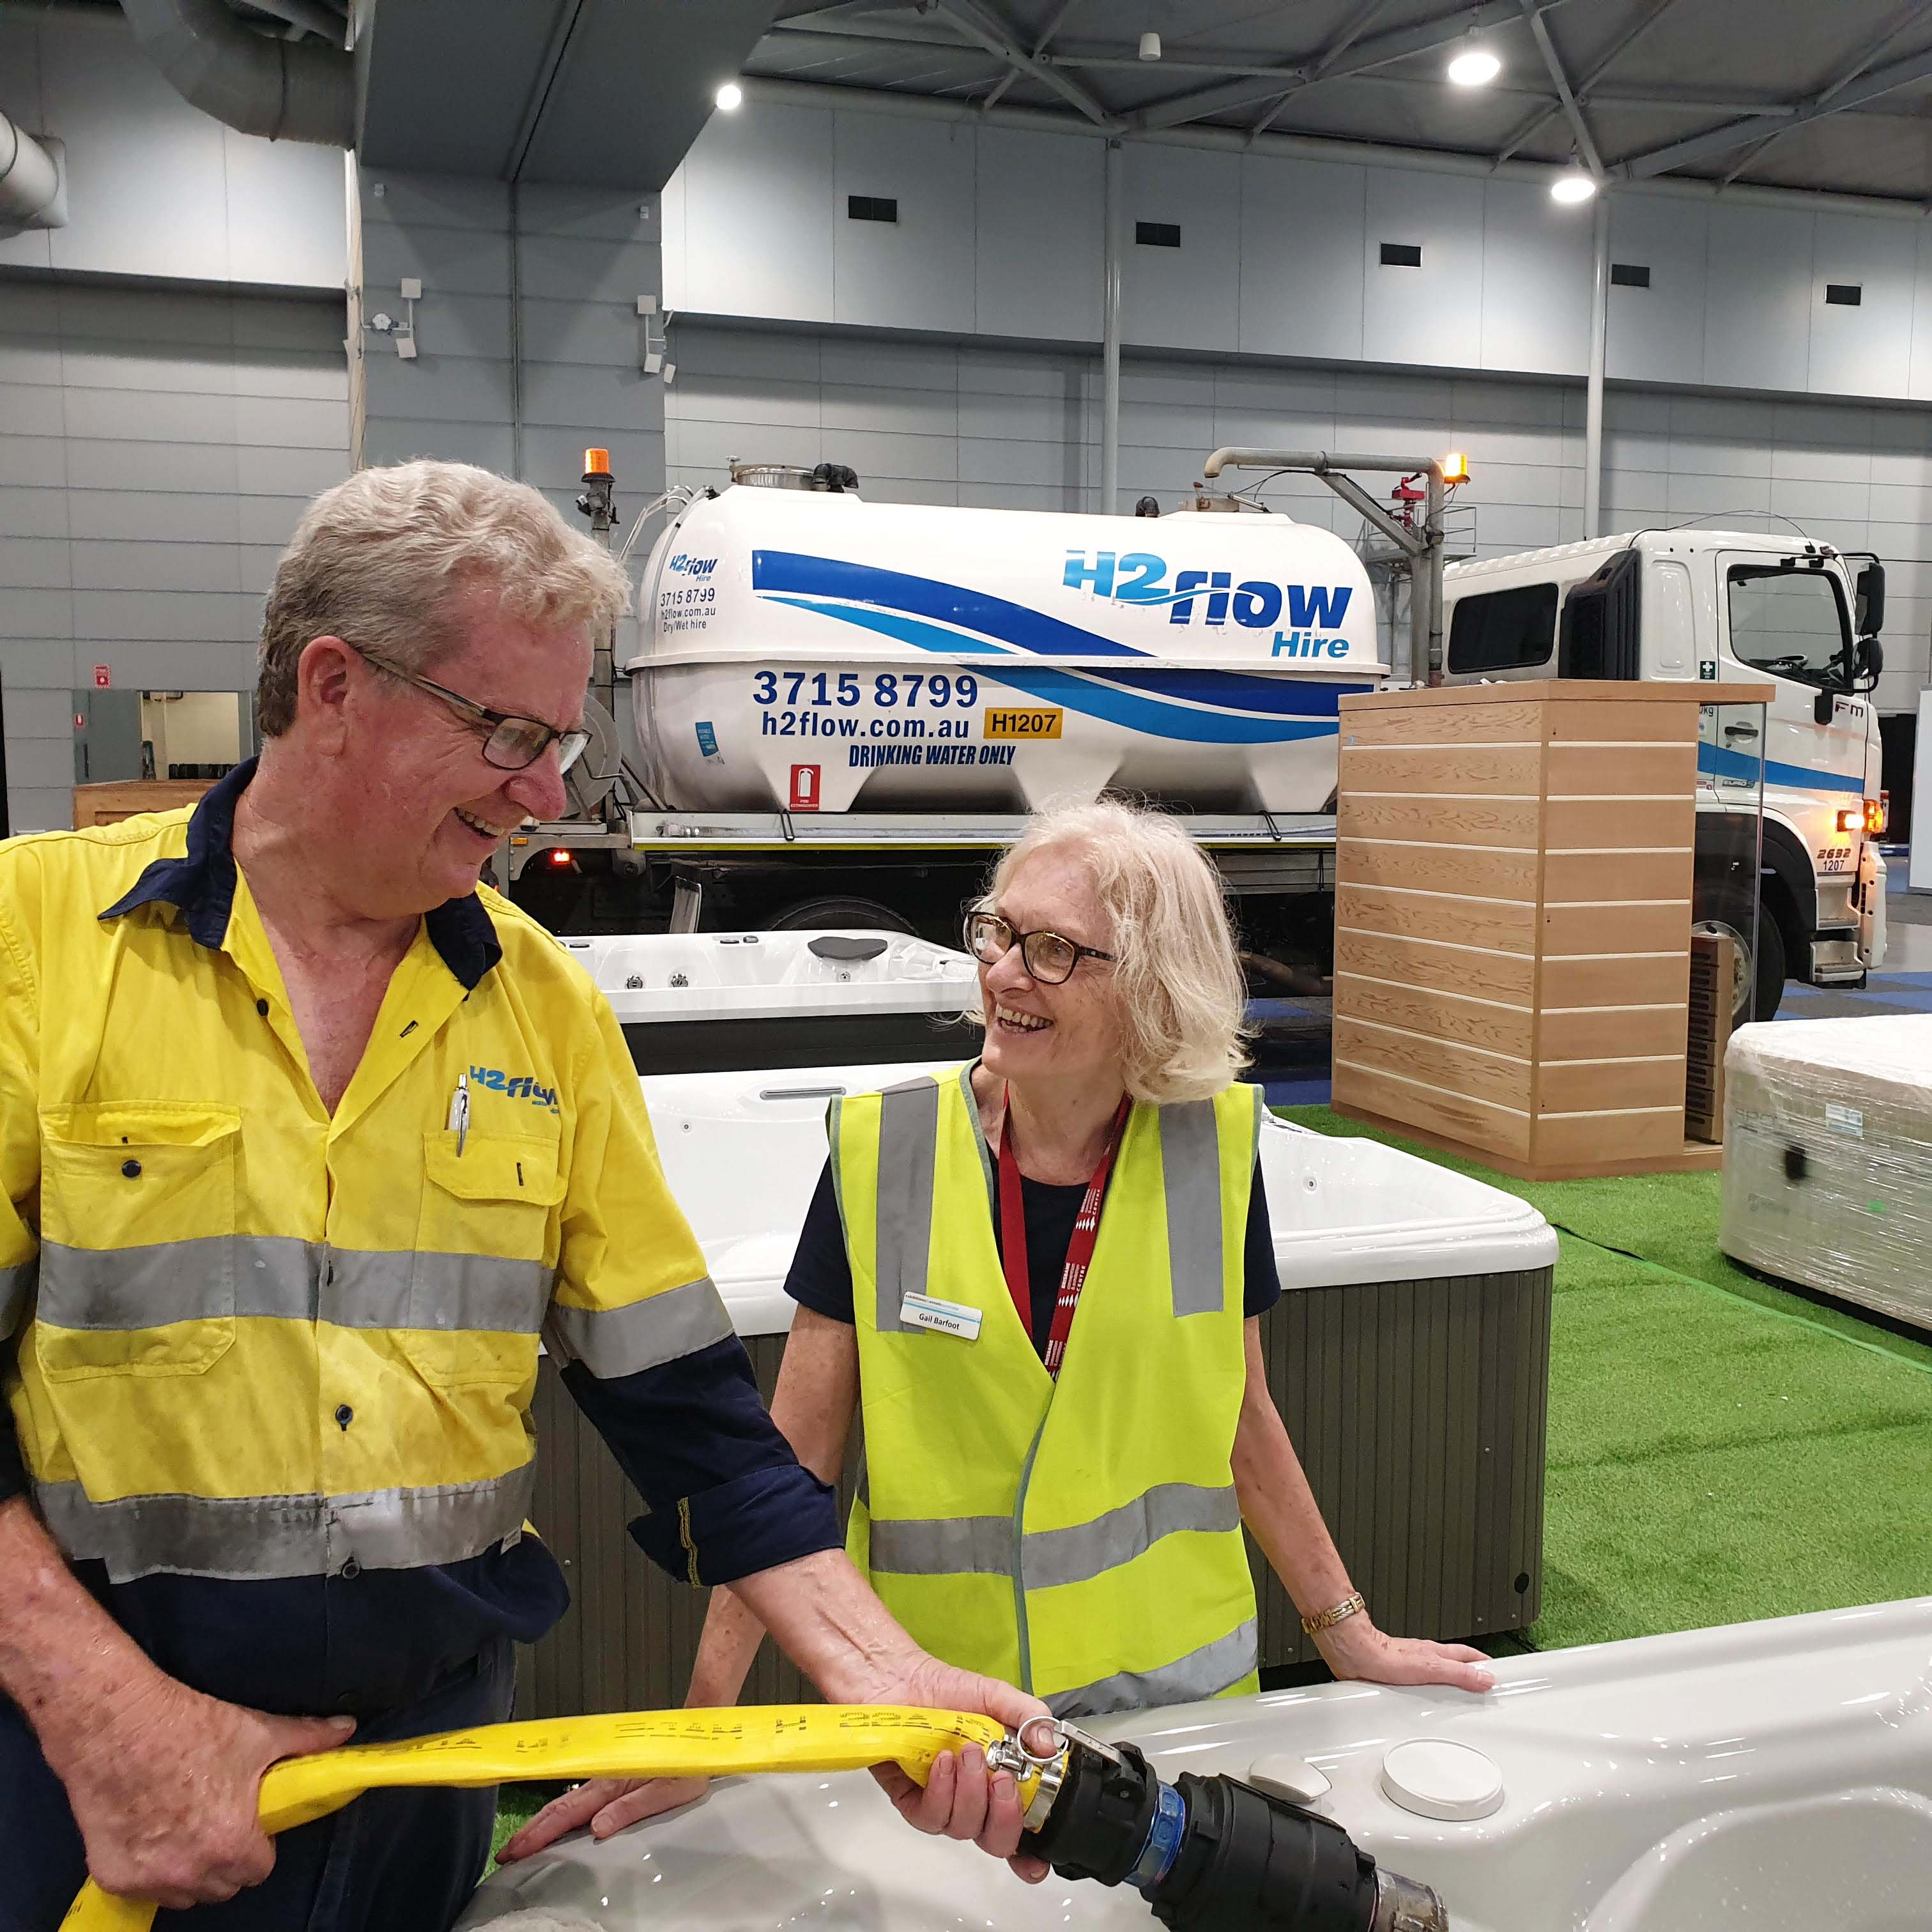 H2flow Hire driver, Wayne Clucas, filling spas for the Brisbane Spa Super Centre display at the Brisbane Home Show.